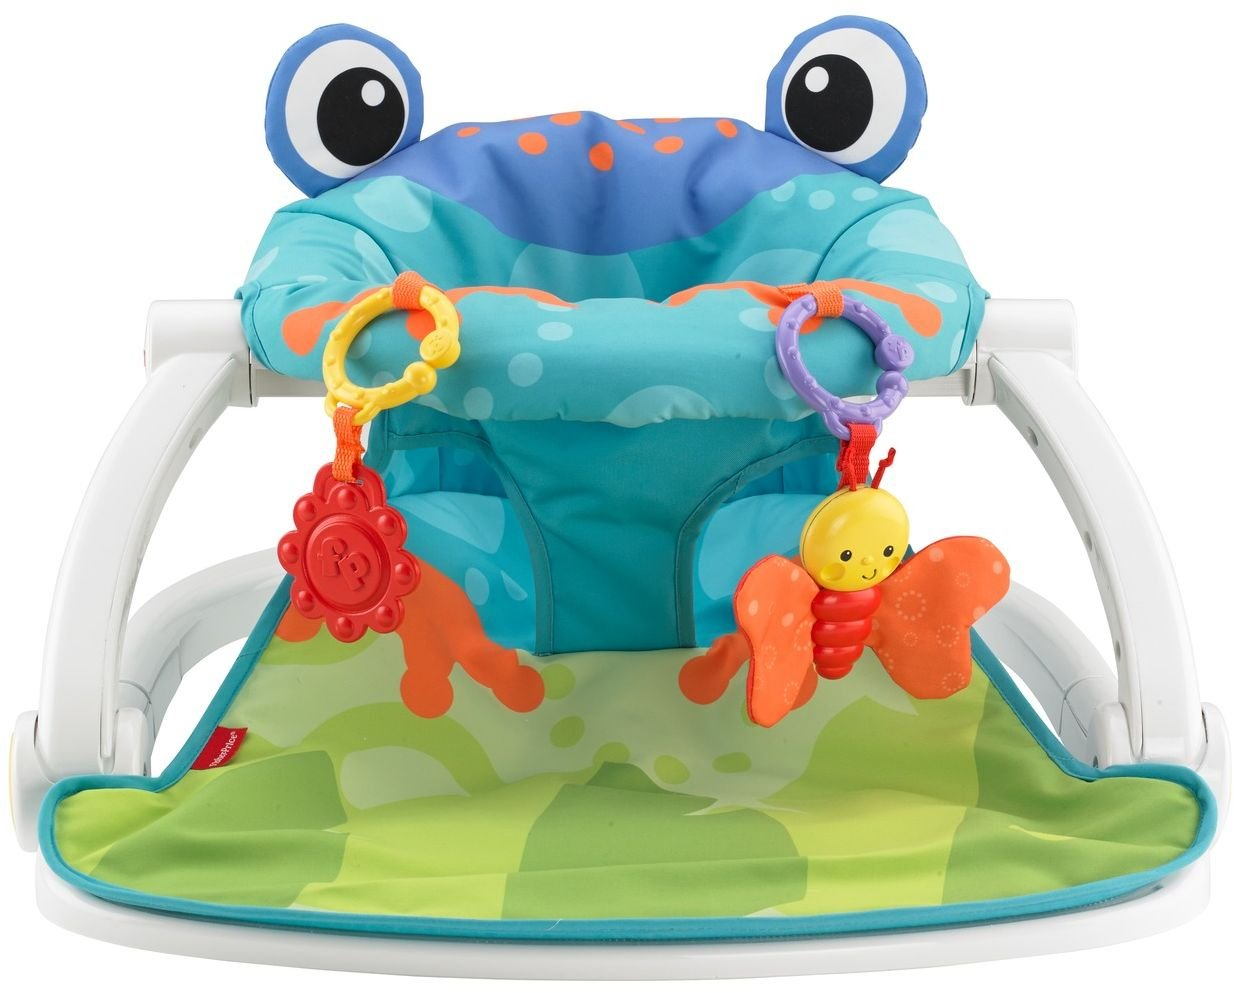 sc 1 st  Amazon UK & Fisher-Price Sit-Me-Up Floor Seat - Frog: Amazon.co.uk: Baby